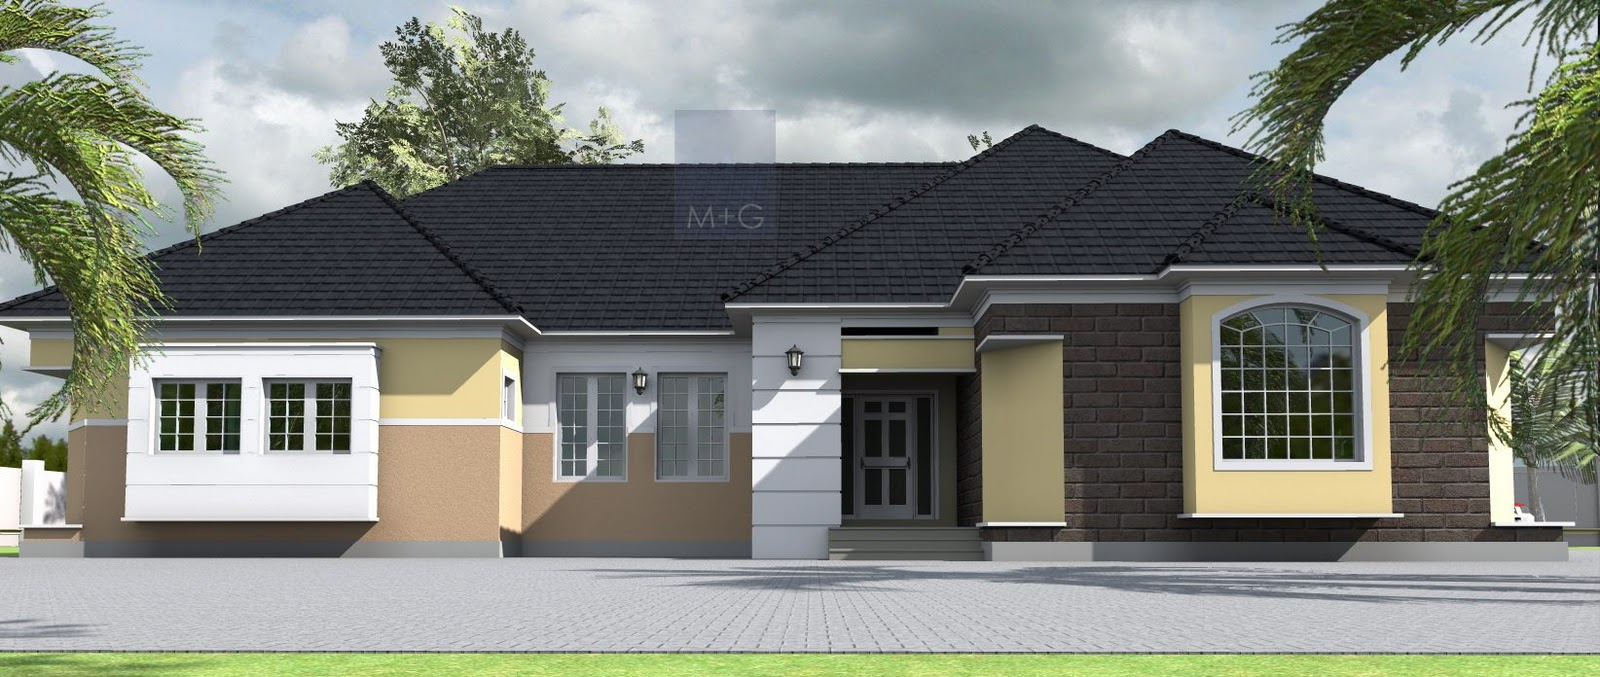 House plans and design architectural designs for 4 for 4 bedroom house designs in nigeria